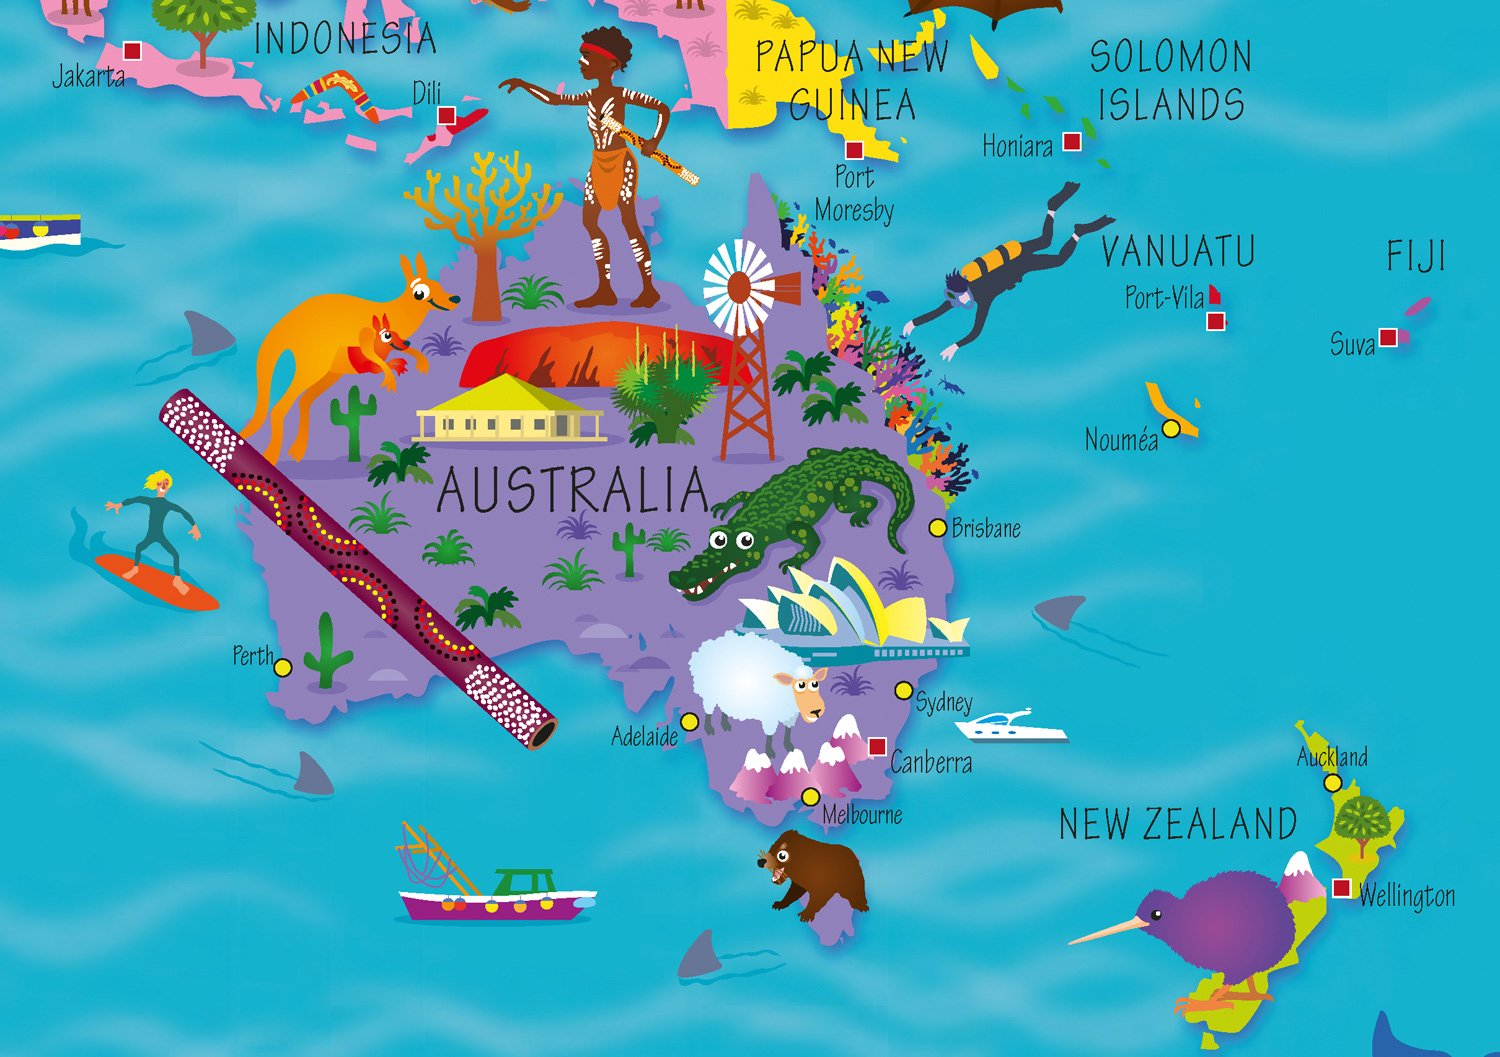 Collins childrens world map amazon collins maps steve collins childrens world map amazon collins maps steve evans 9780008114732 books gumiabroncs Image collections